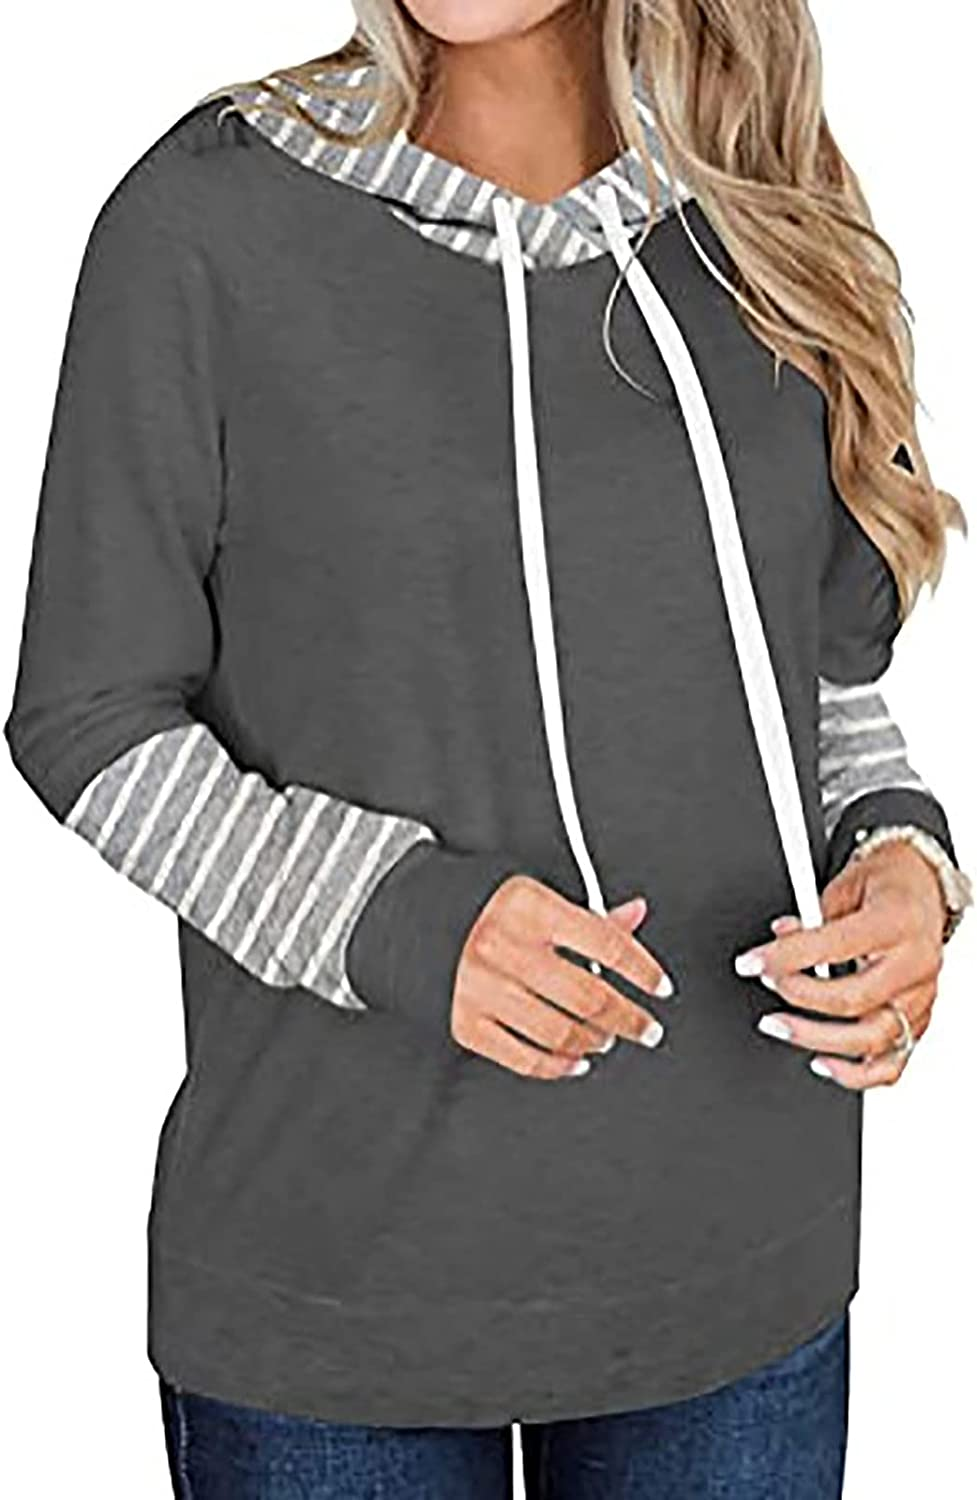 Stripe Splice Hooded Sweatshirts for Women Student Style with Drawstring Pullovers Loose Tops